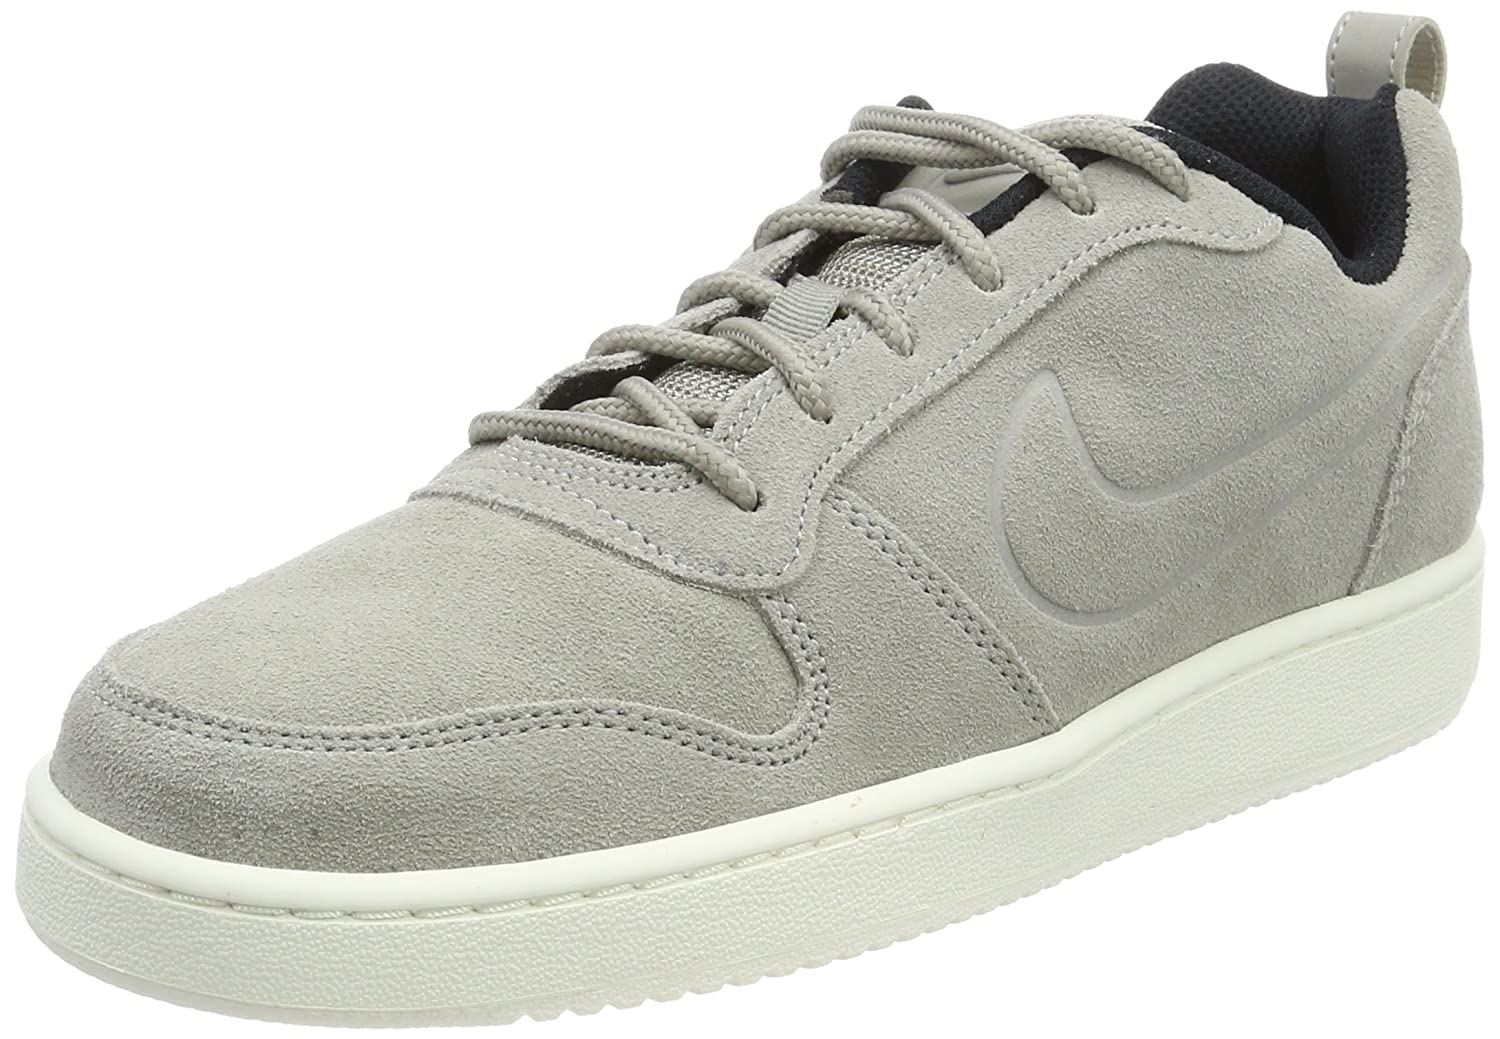 Nike Herren Court Borough Low Premium Sneaker  43 EU|Grau (Cobblestone/Cobblestone-black)